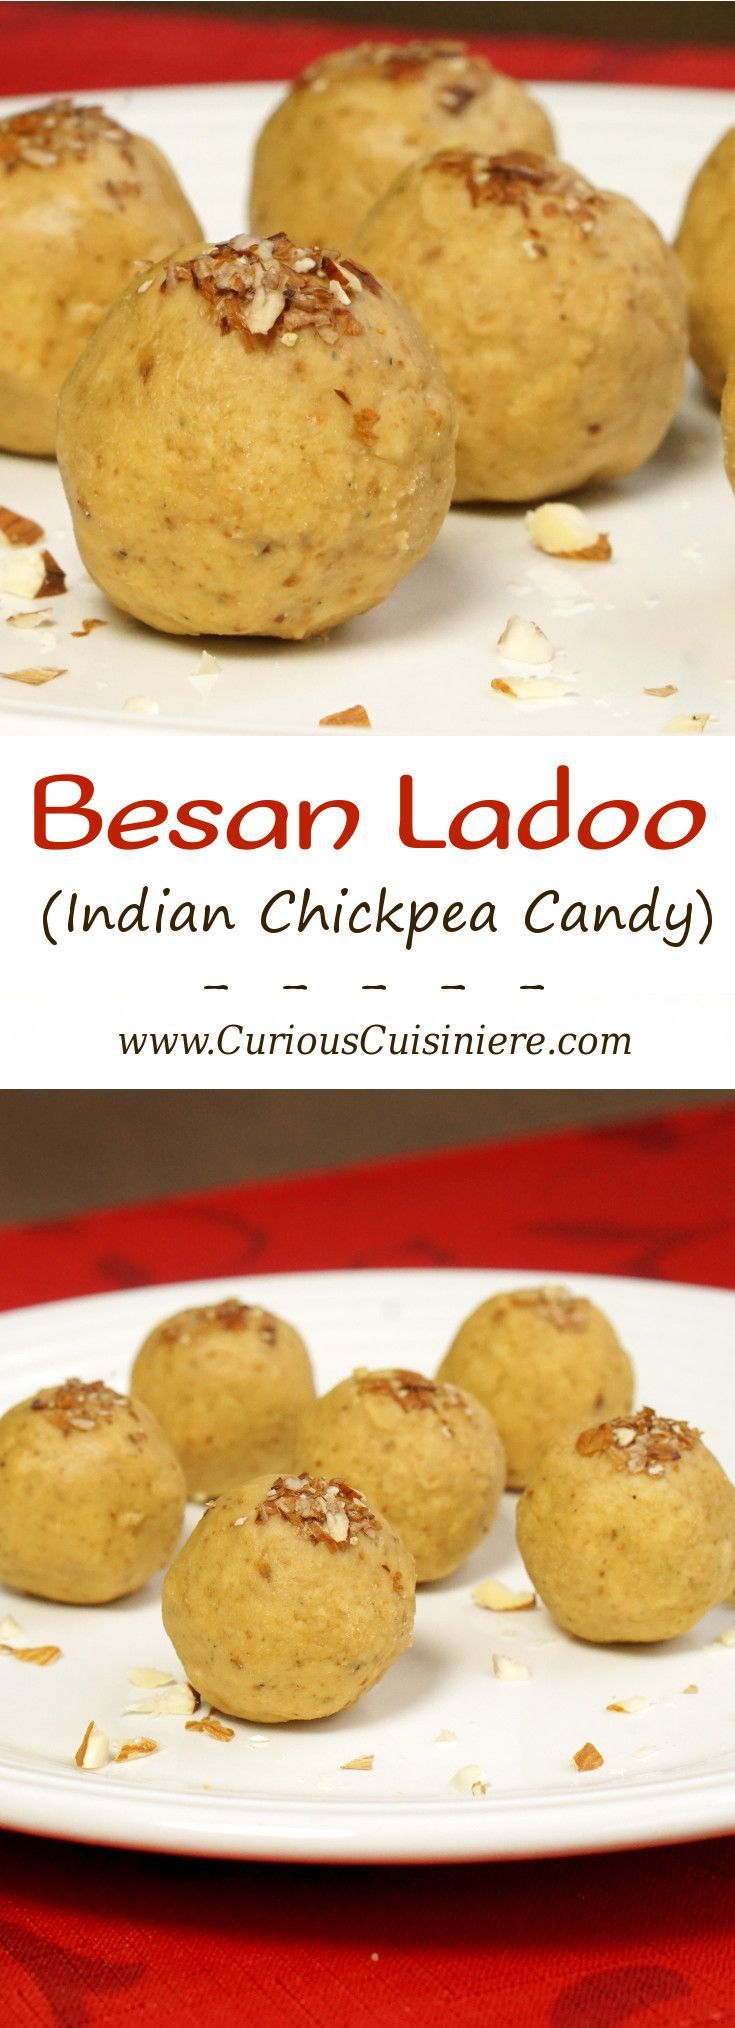 It's easy to make these nutty and sweet, no bake Indian chickpea treats. Besan Ladoo are a perfect gluten free treat to add to a cookie platter! | www.CuriousCuisiniere.com